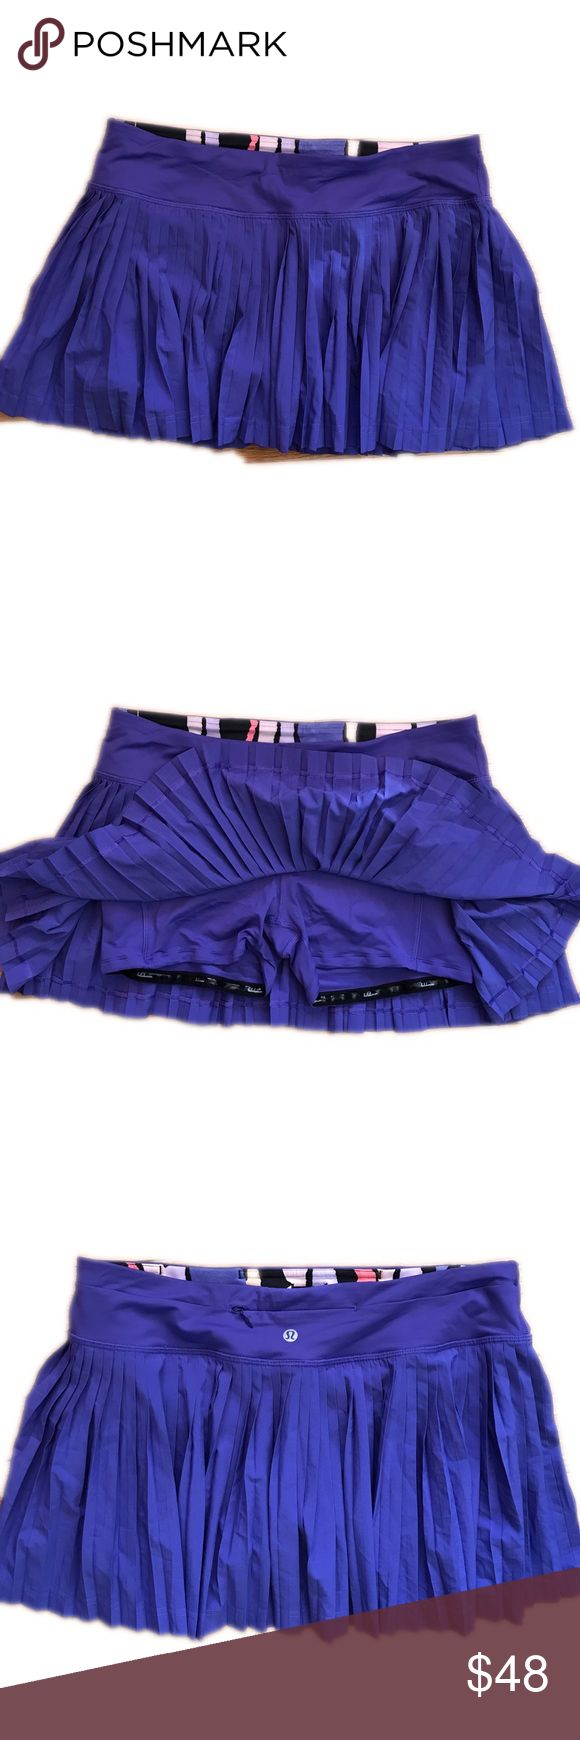 New Listing🎉 Lululemon Pleat To Street Skirt NWOT/Maybe worn once? Like-new Lululemon Pleat To Street Skirt. I LOVE these but have quite a few and decided purple is not my color! Built in shorts, zippered back pocket. Photo #4 is a stock photo with the wrong color, shown for fit only.                                                                     💕Love the Item but not the price? Make a reasonable offer 💕 (B3) lululemon athletica Skirts